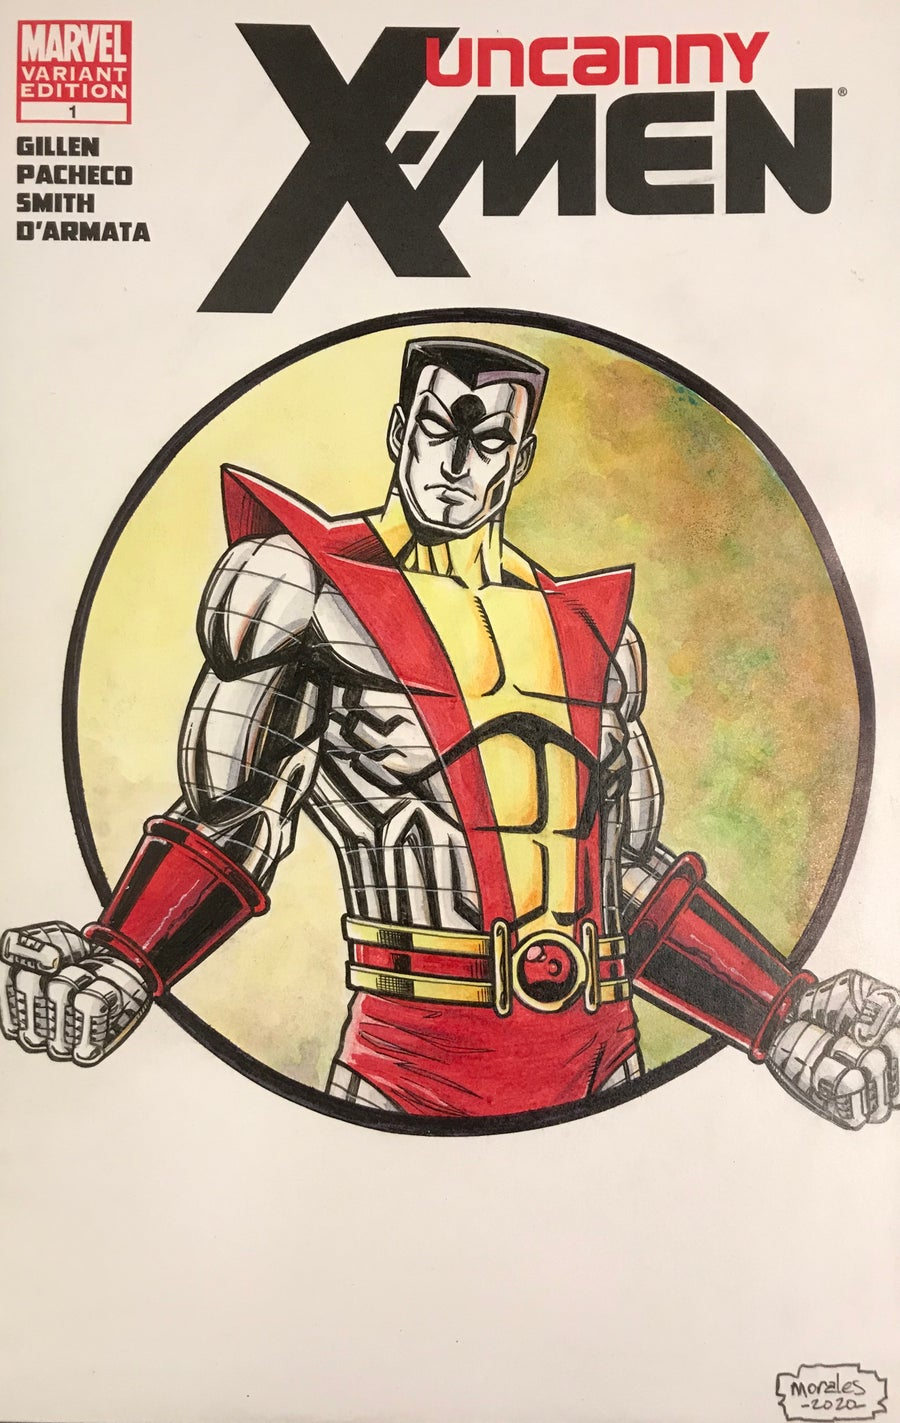 Image of Uncanny X-Men Colossus sketchcover (2020)